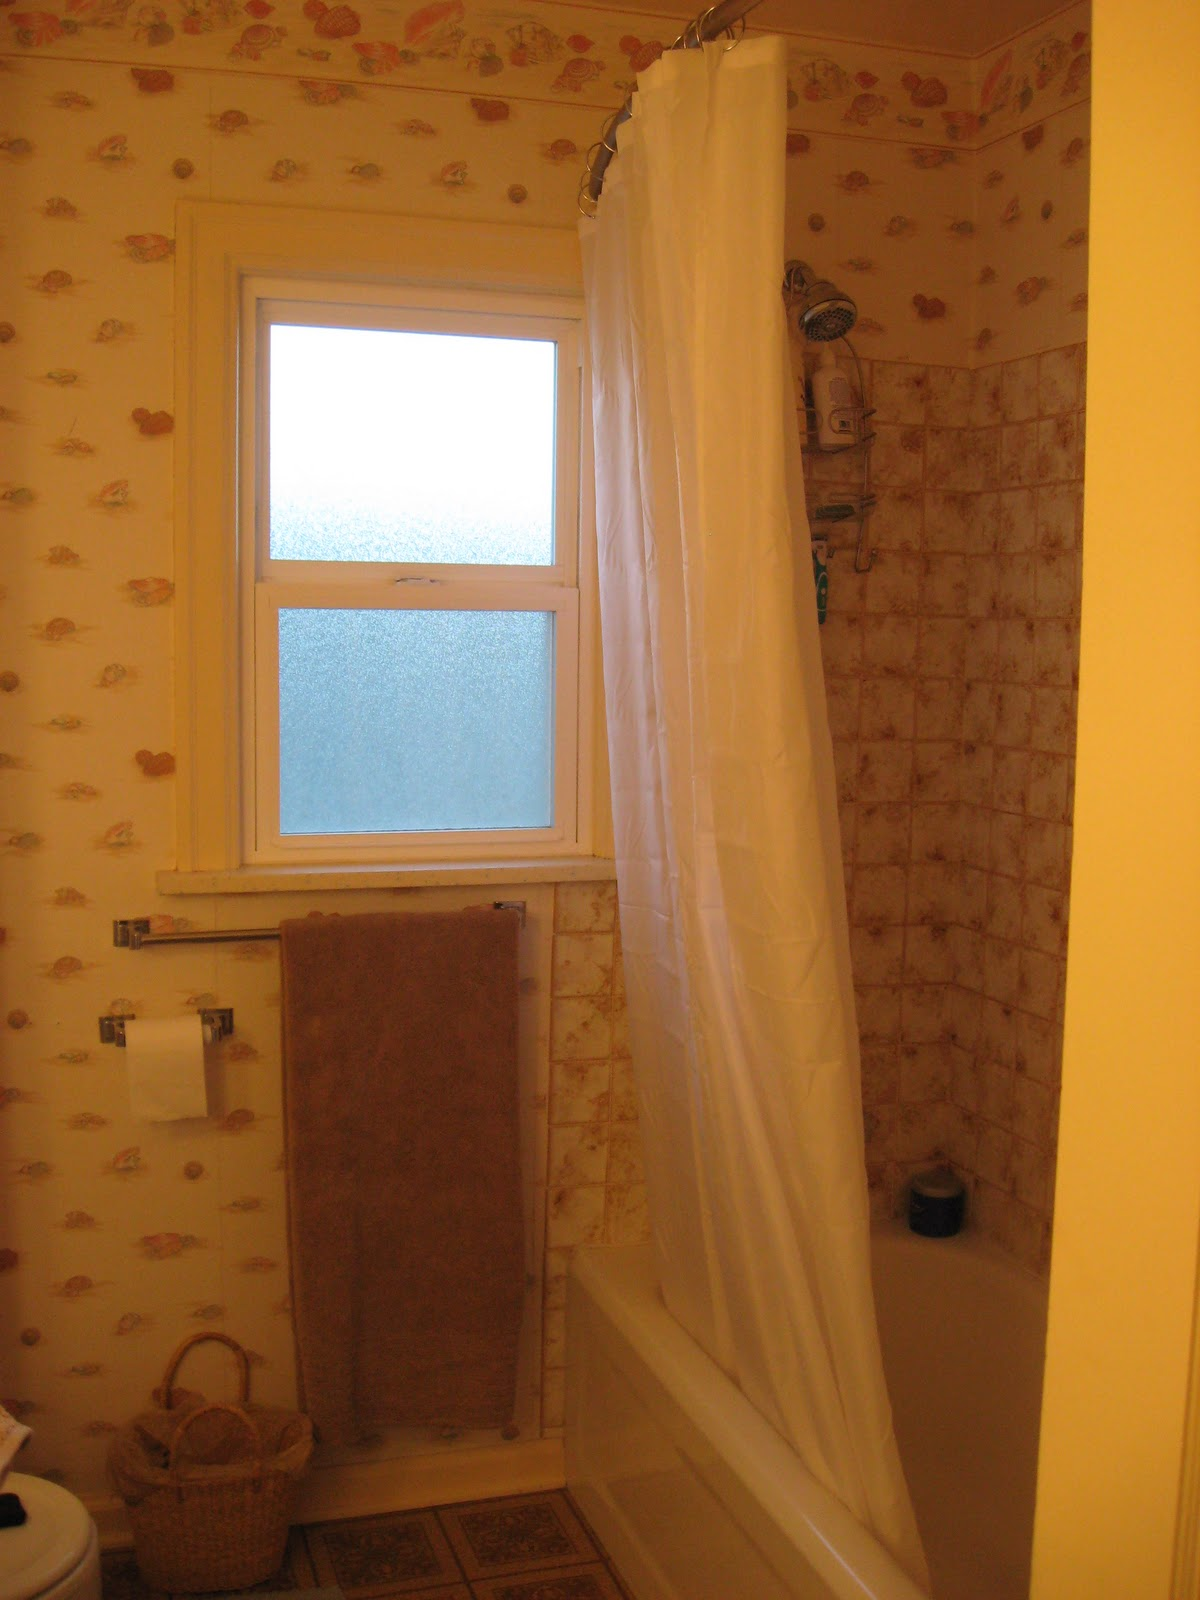 Wallpaper removal tips our sound home for Home wallpaper removal tips